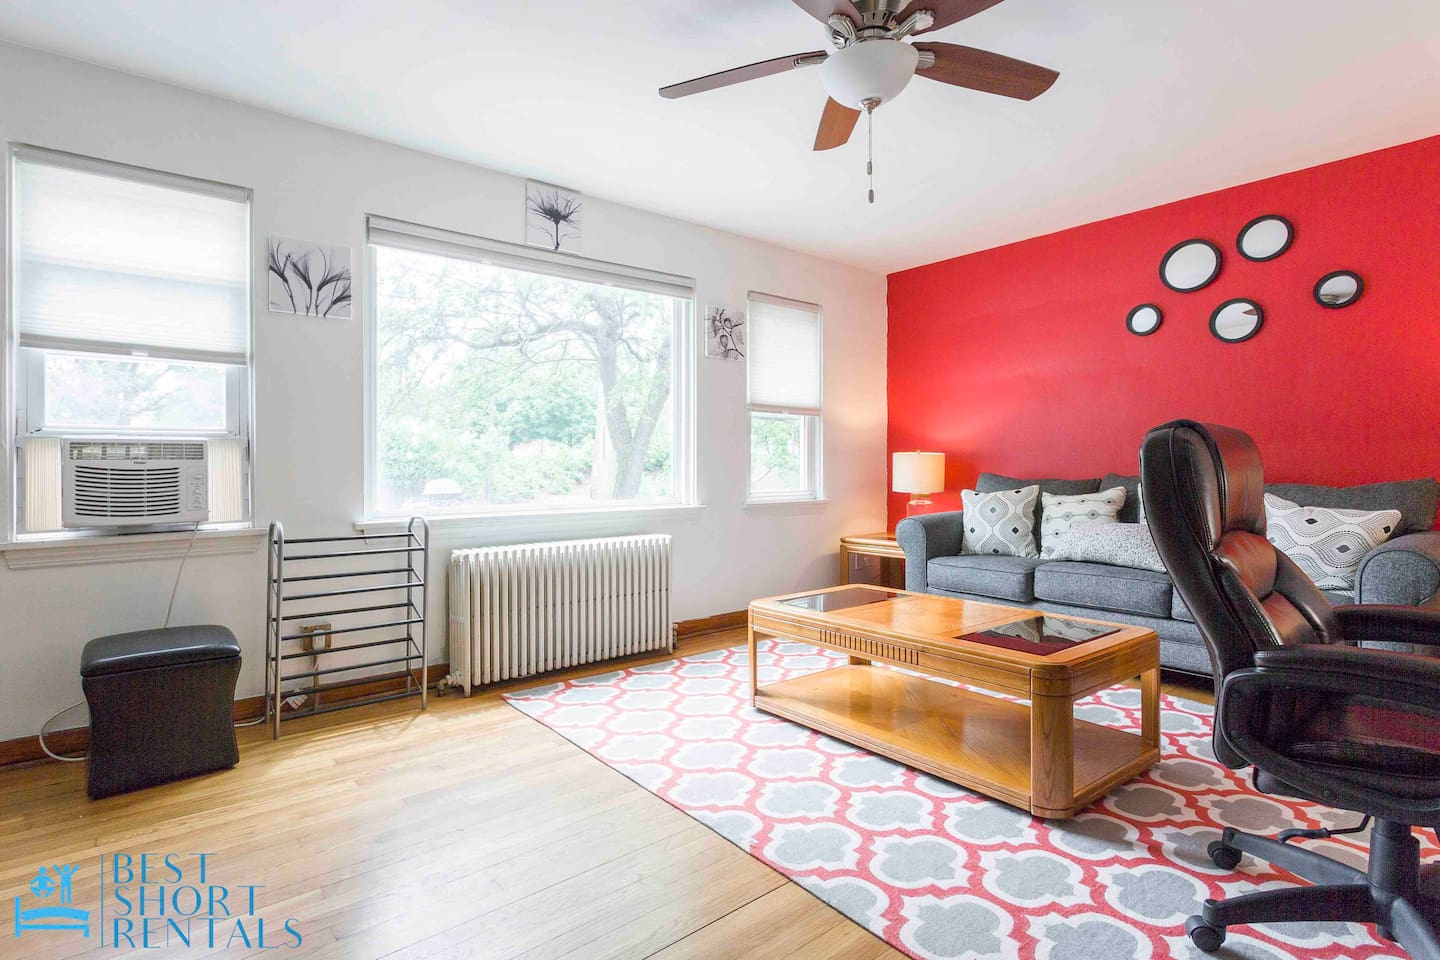 Modern Style Living Room Area with Unlimited Access to fast WiFi. Netflix, Amazon Video, and YouTube TV for all Live feed. Full of lights with playground garden view.